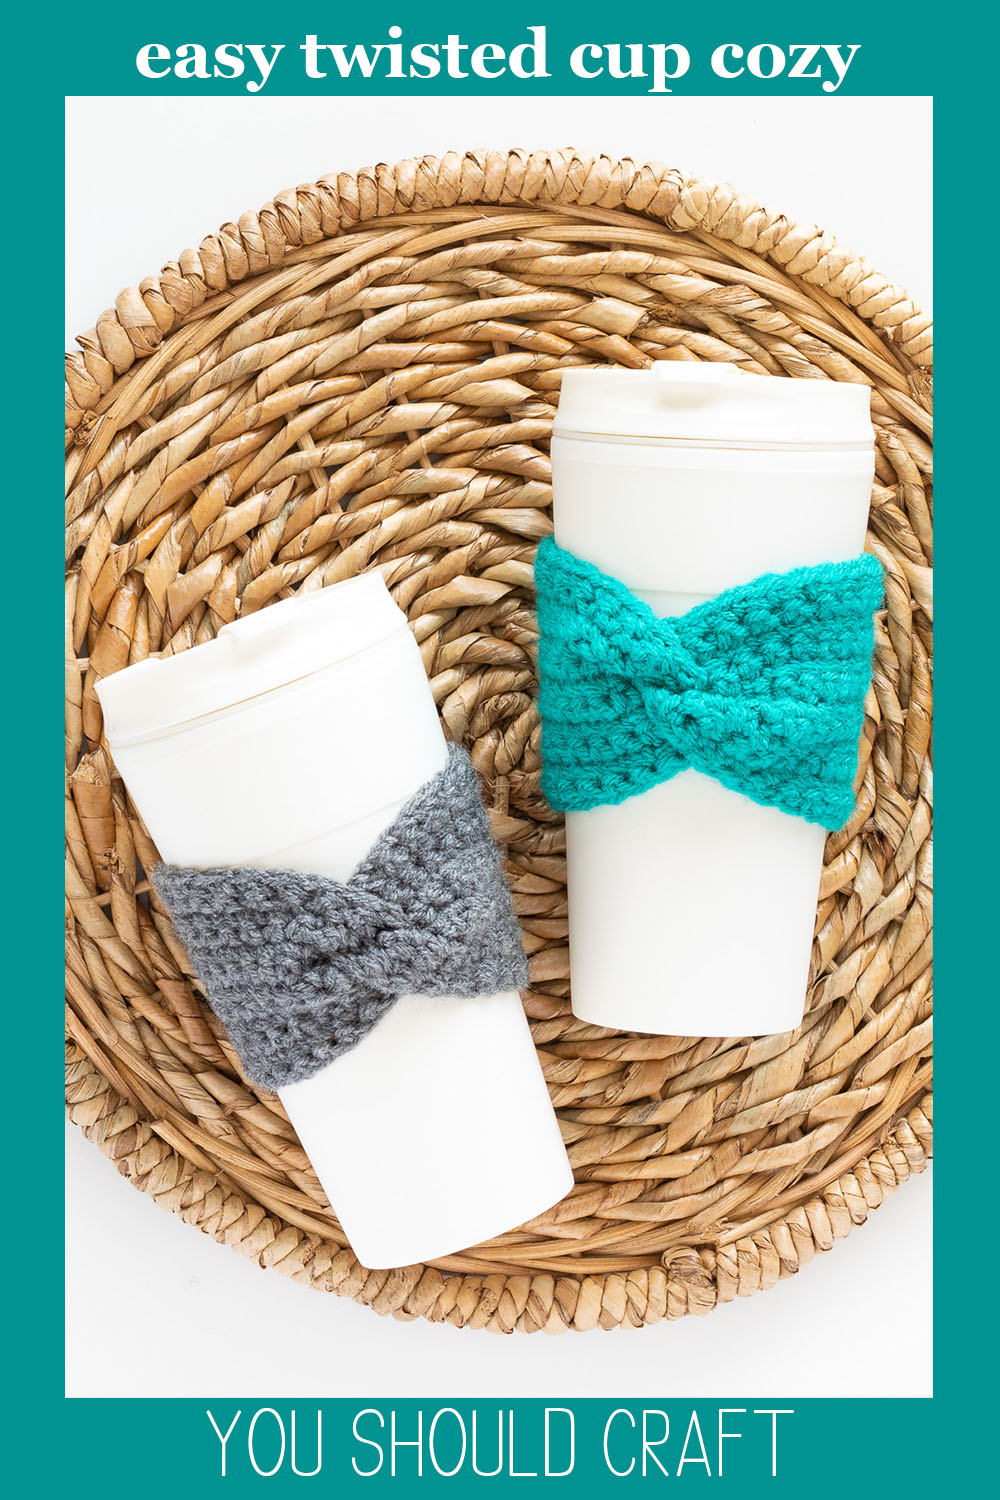 two crocheted cup cozies on cream colored coffee cups